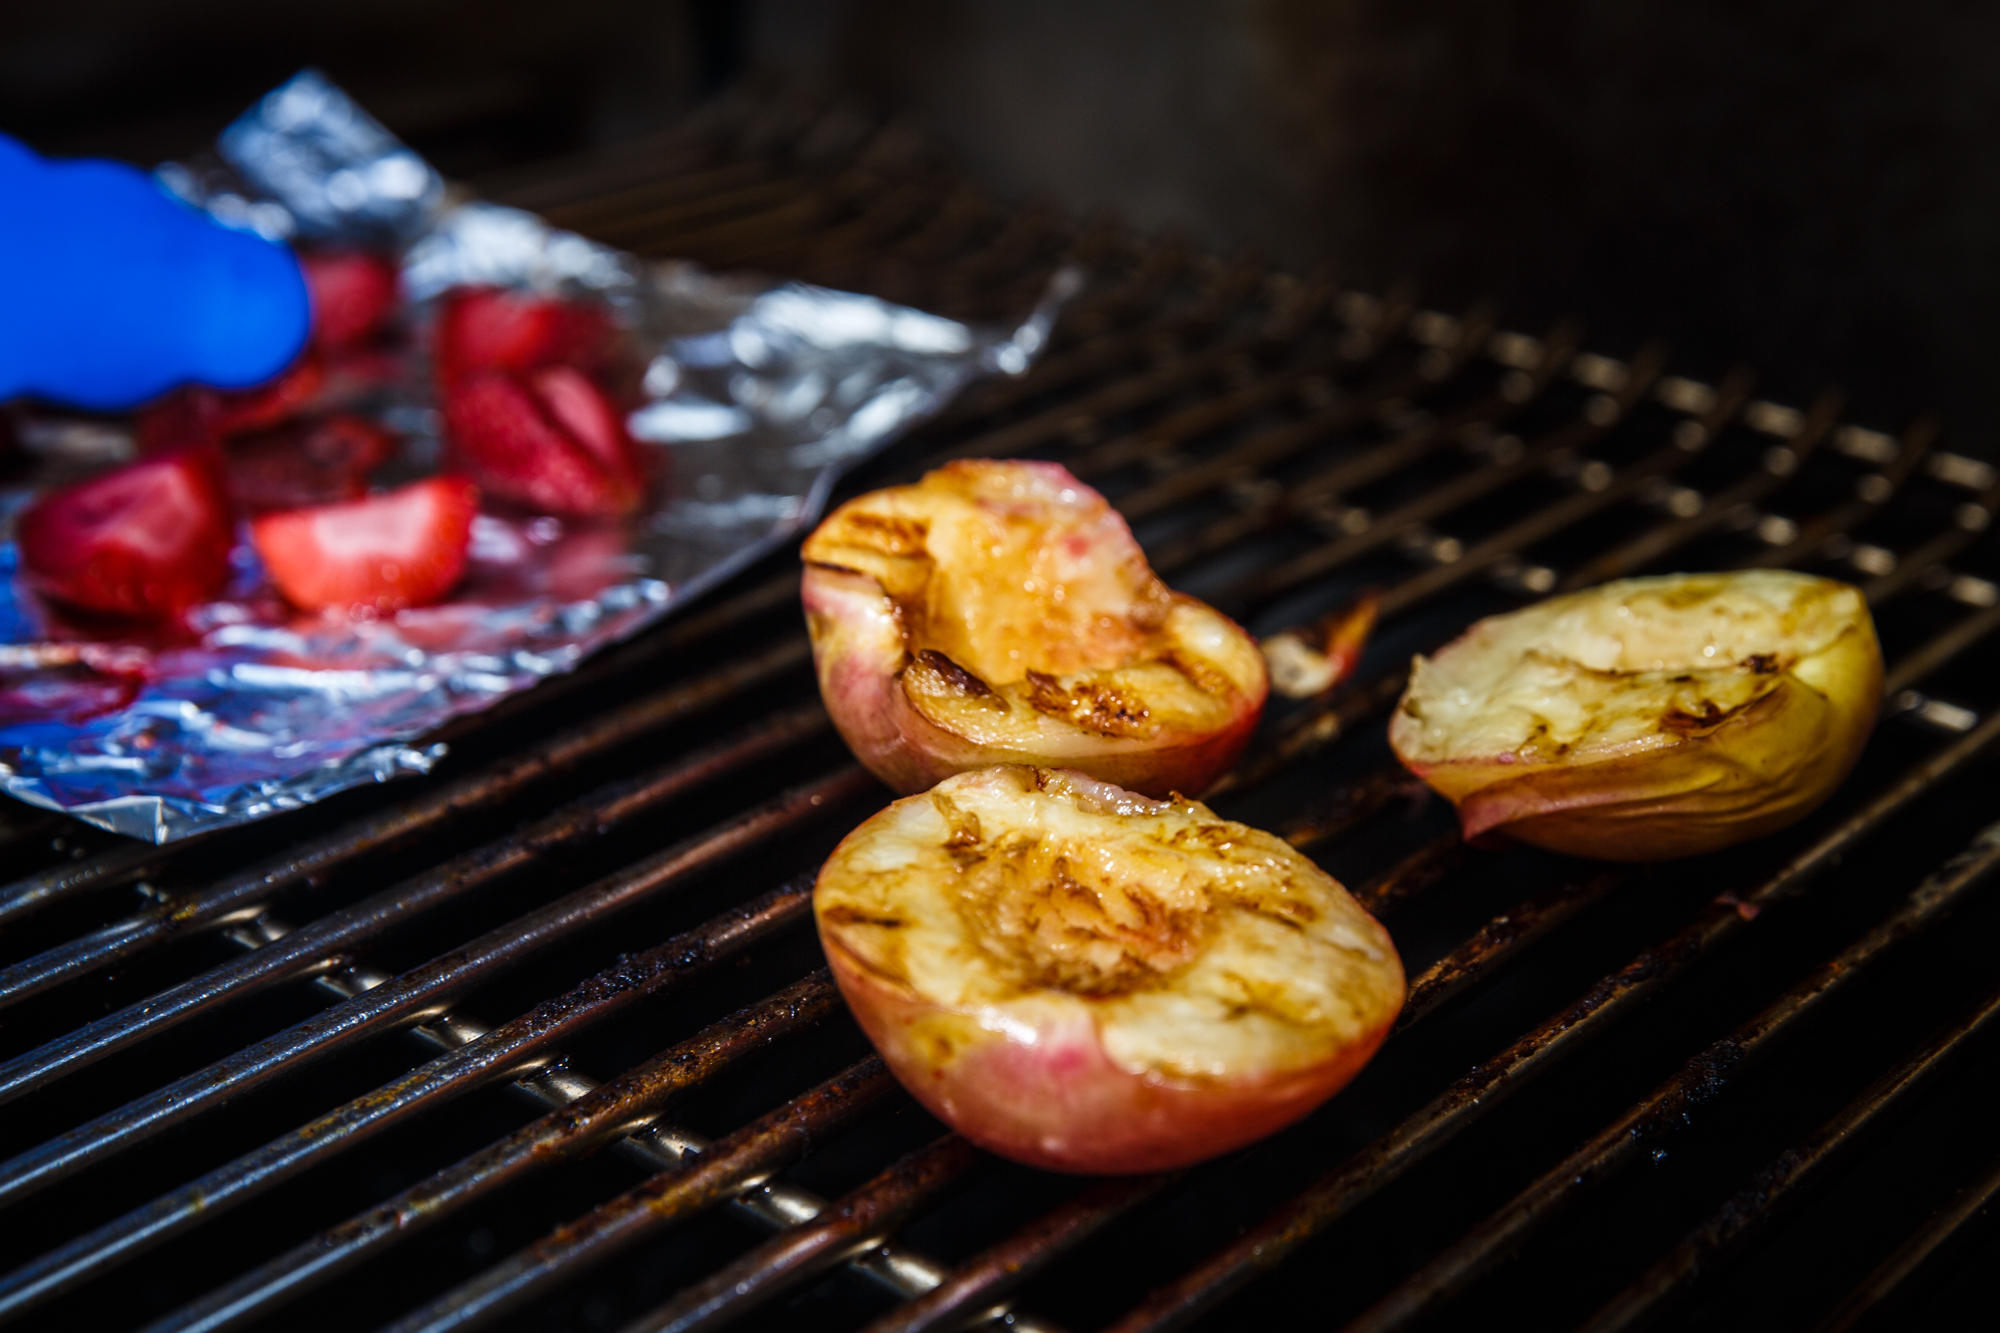 grilling-4x3-cnet-smart-home-9129-012